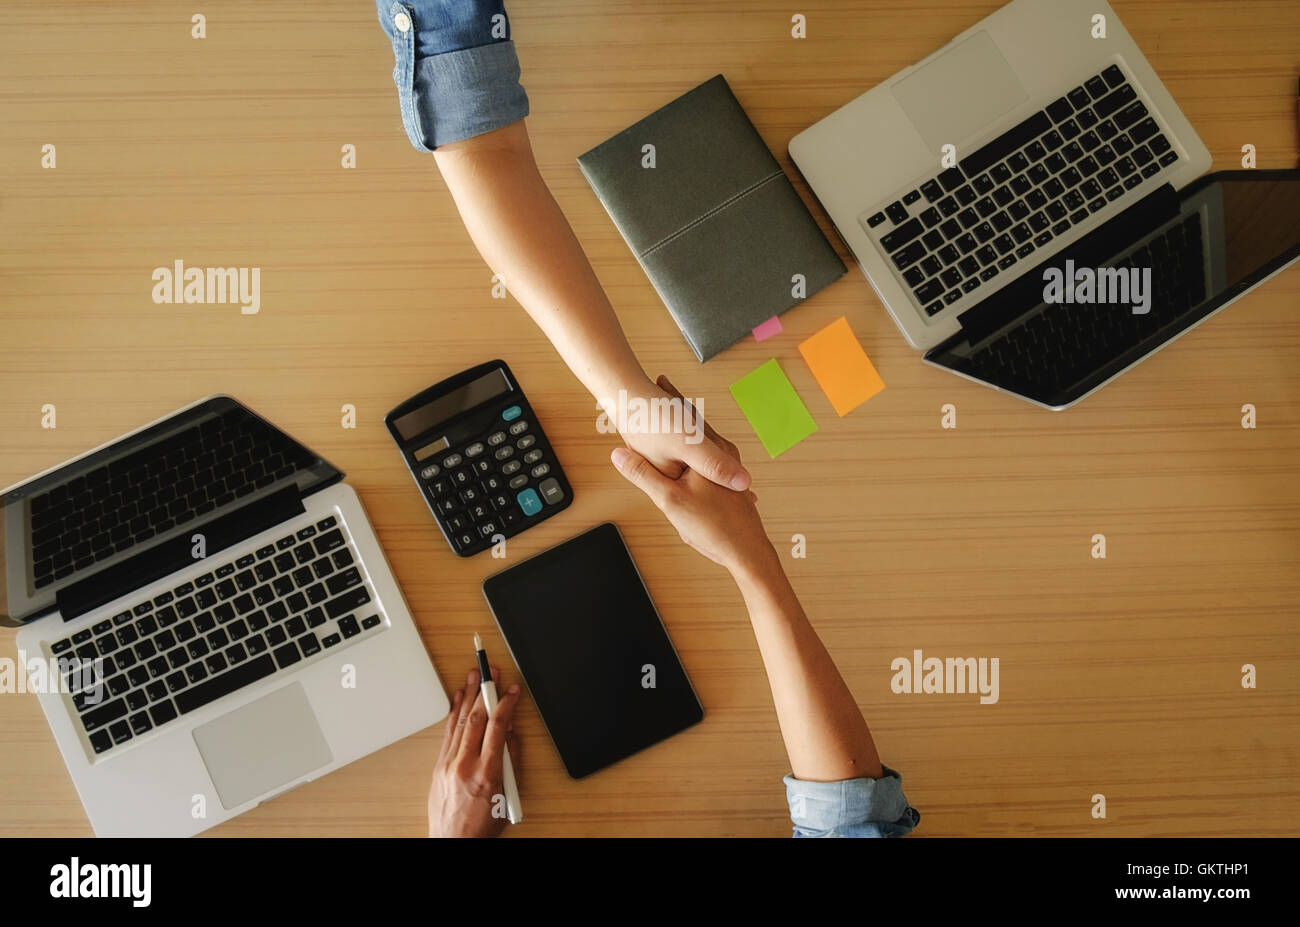 business, people, discussing,successful,teamwork,accounting, achievement,co-workers, collaboration,handshake - Stock Image